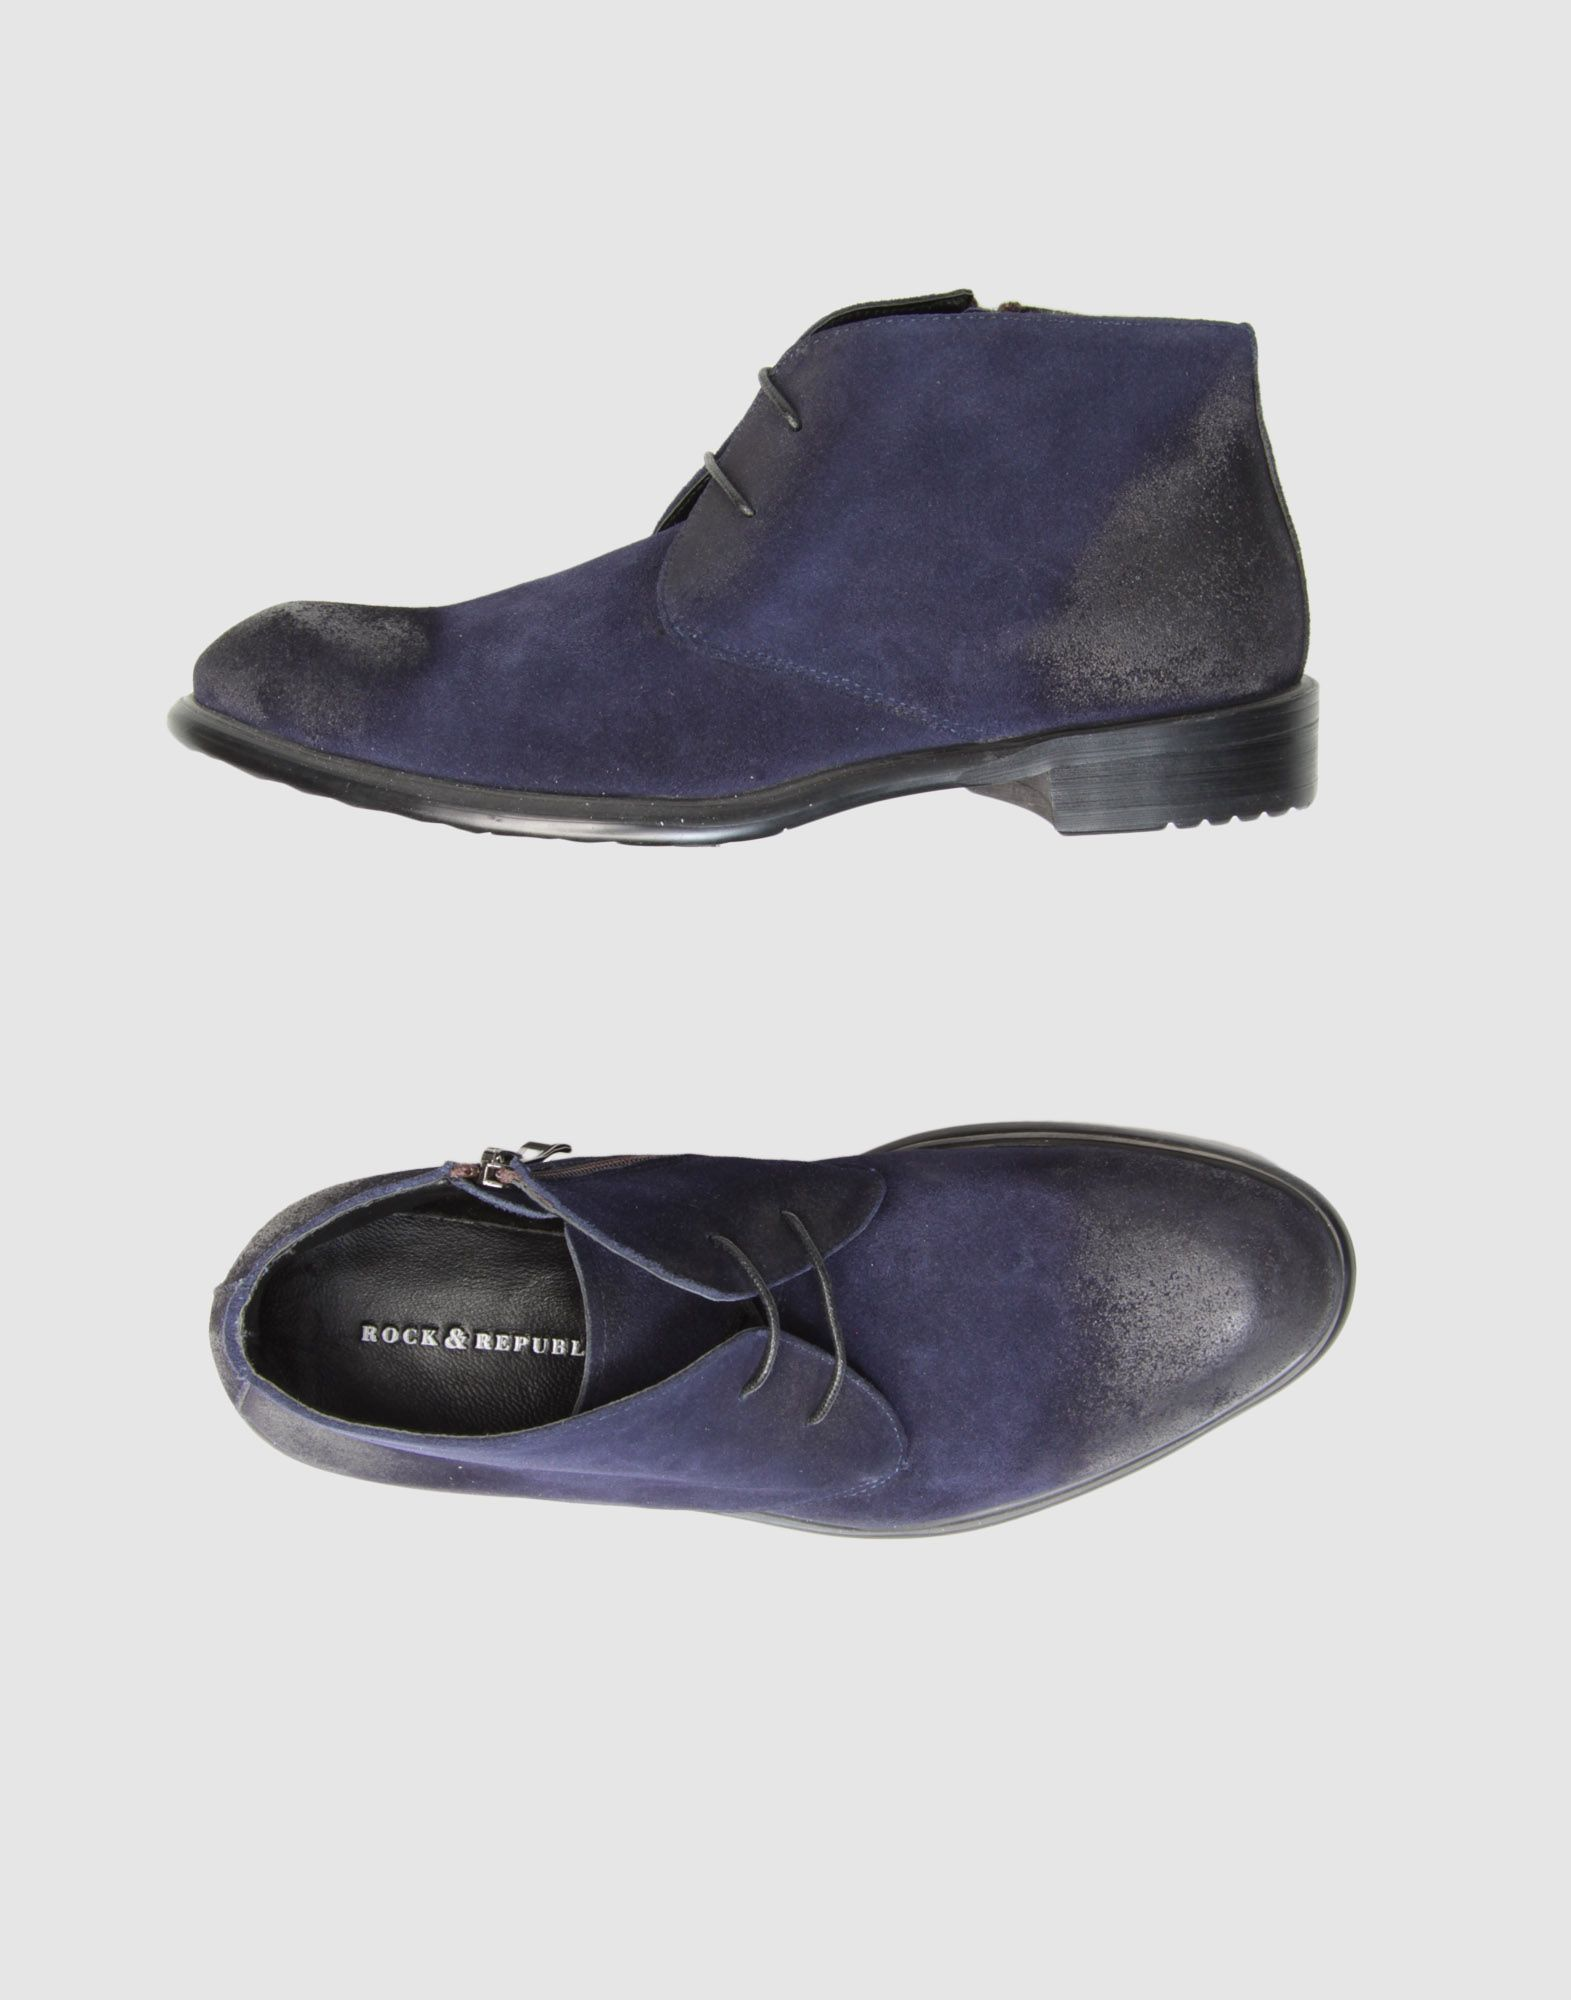 Rock Republic Shoes  Mens